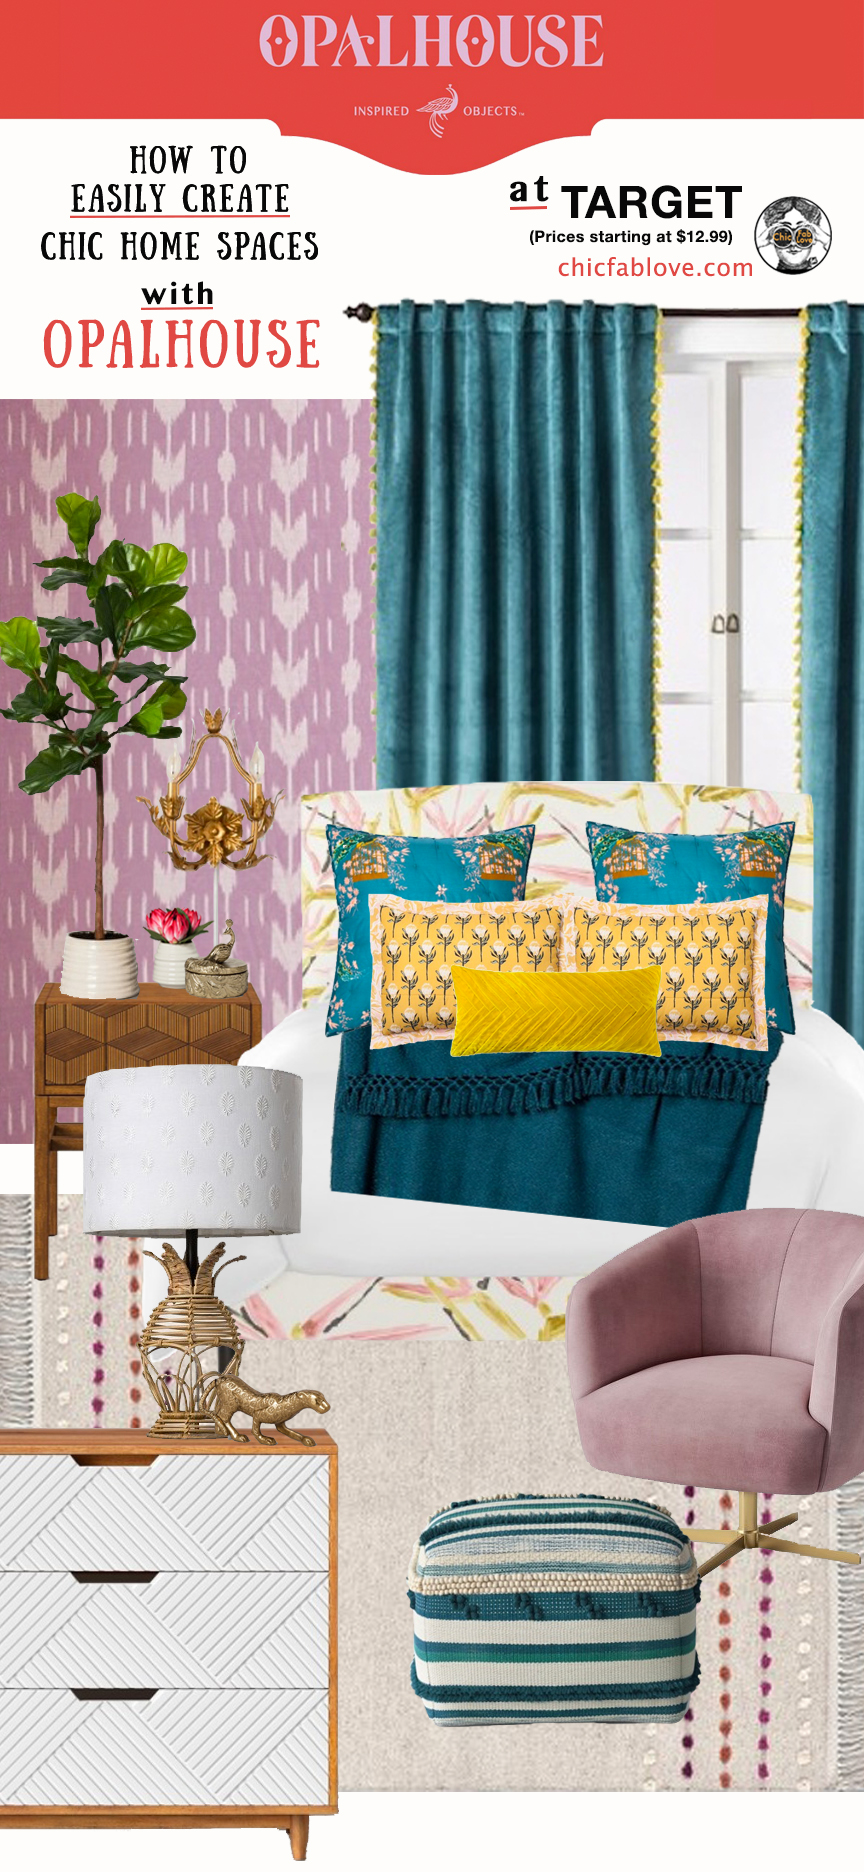 How To Easily Create Chic Home Spaces With Opalhouse